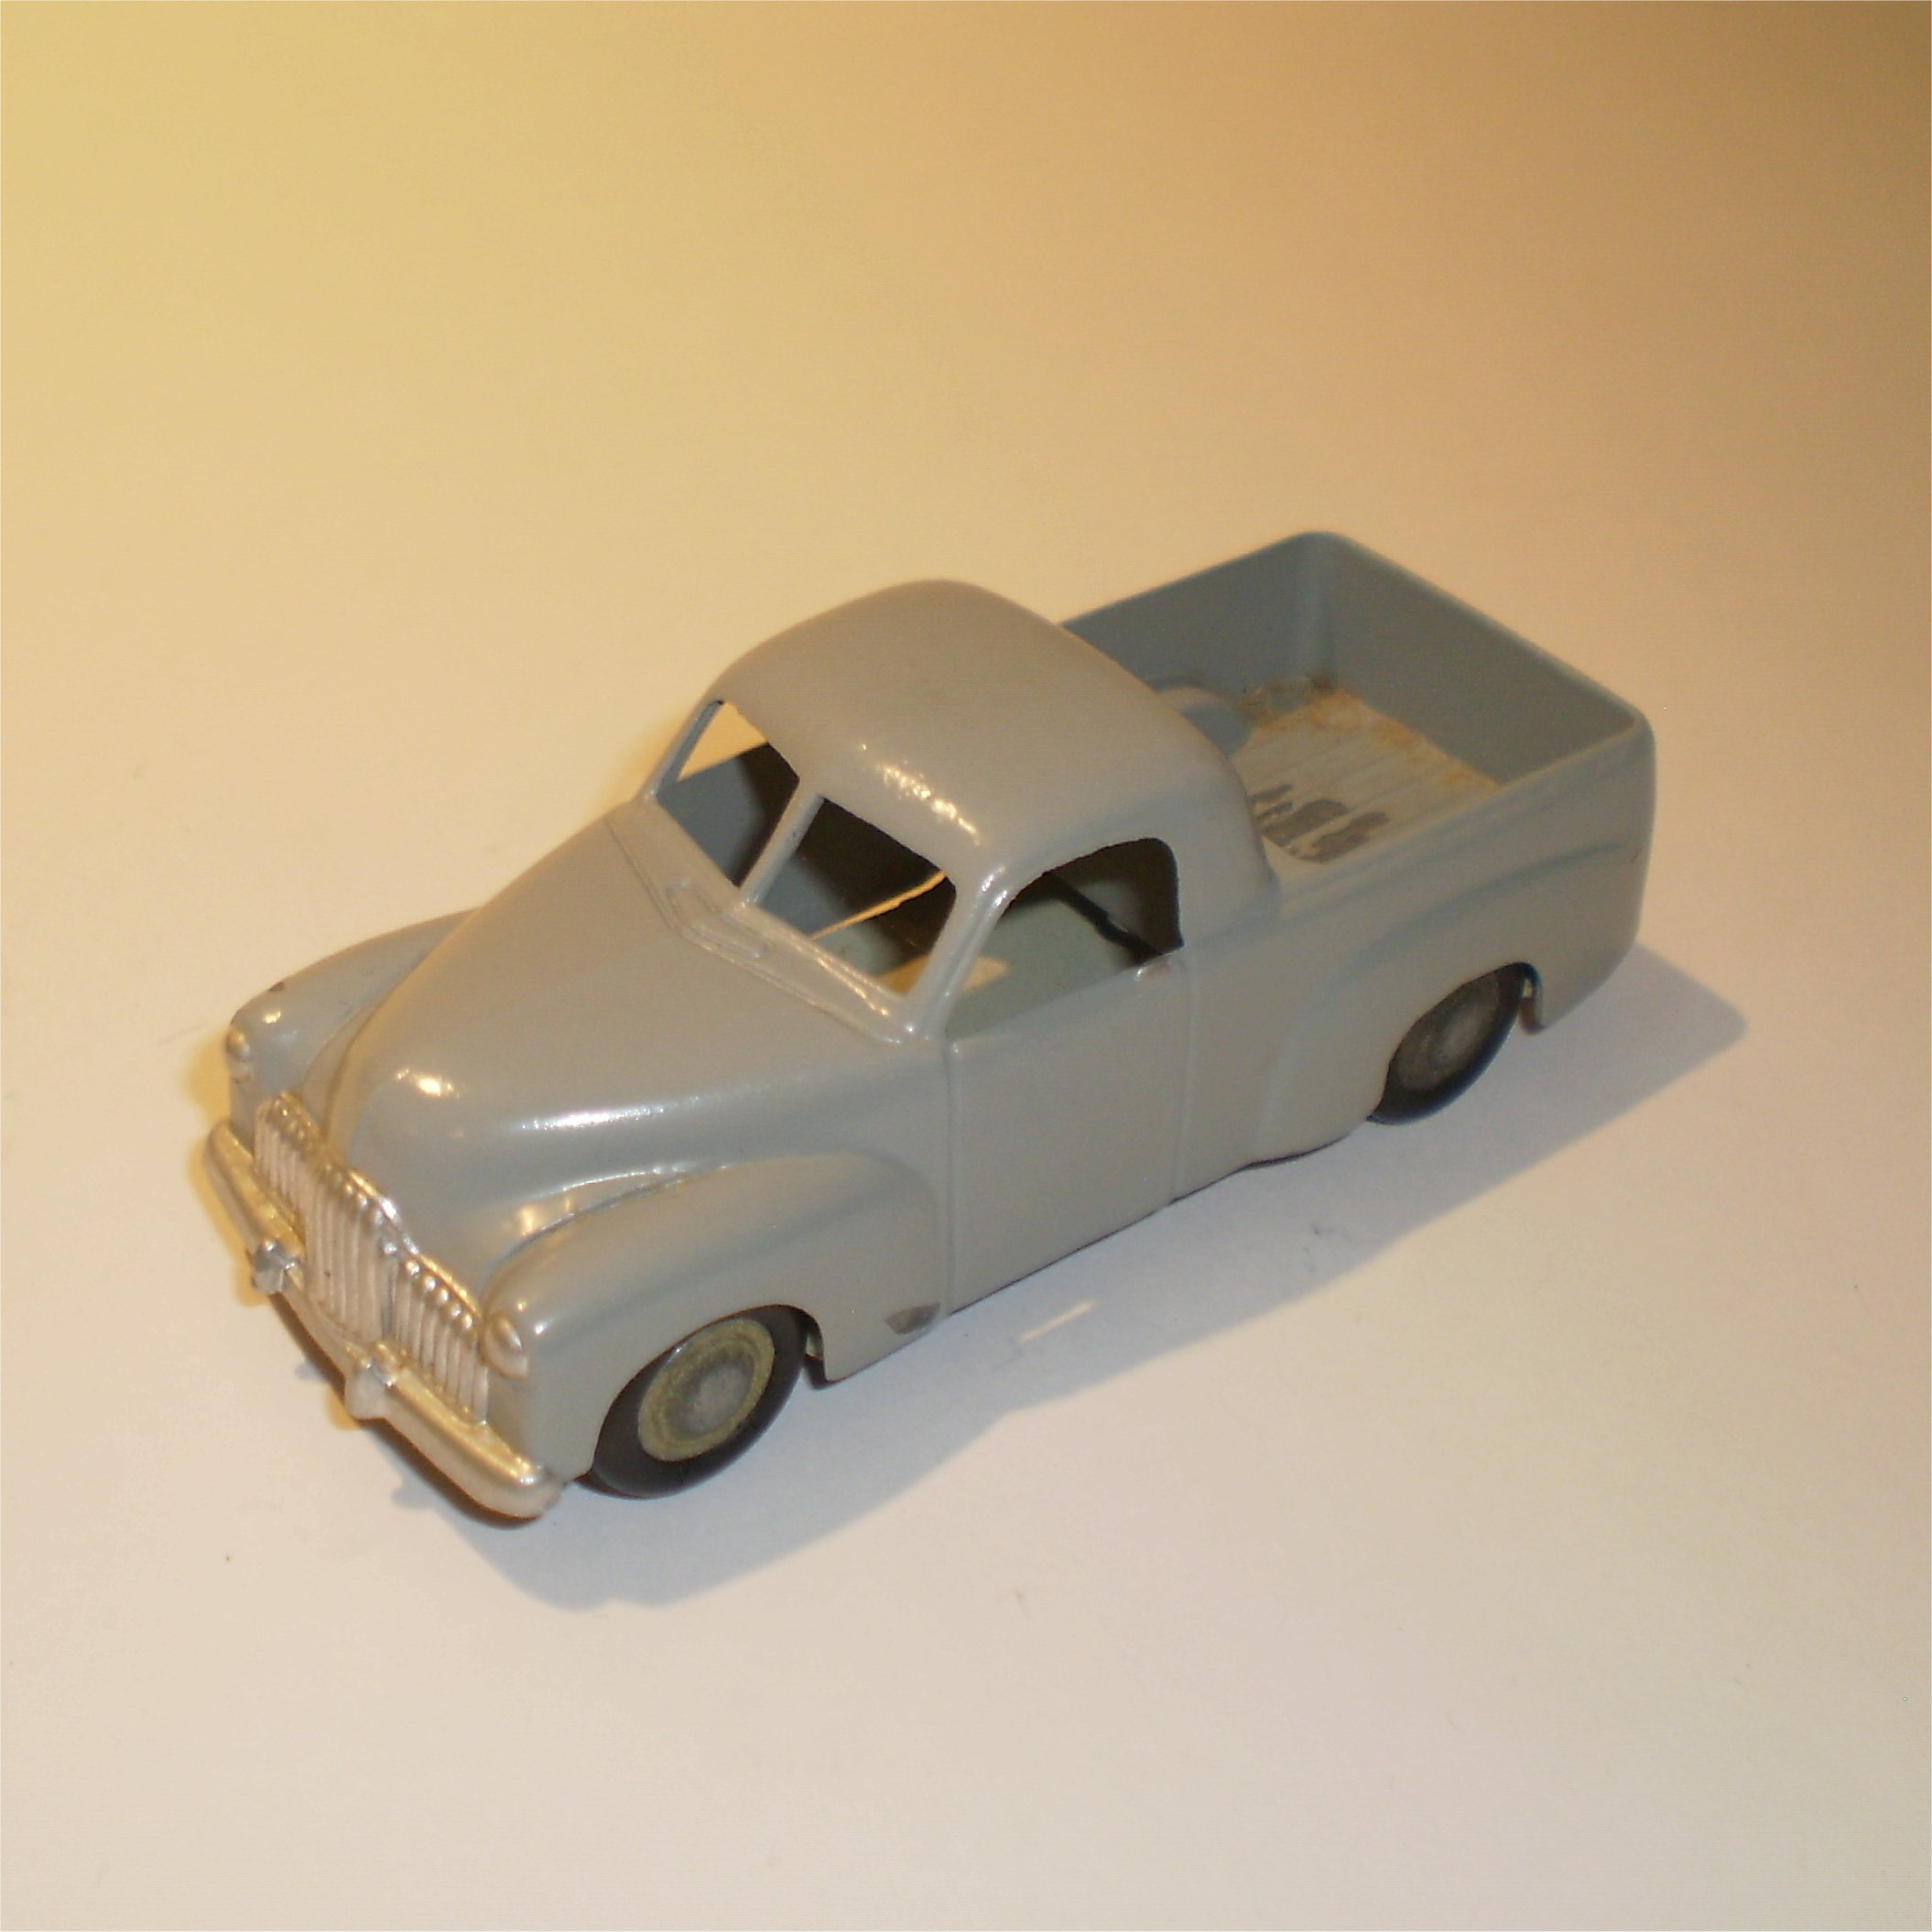 Toy Model Gallery : Holden toy car models — tonys toys